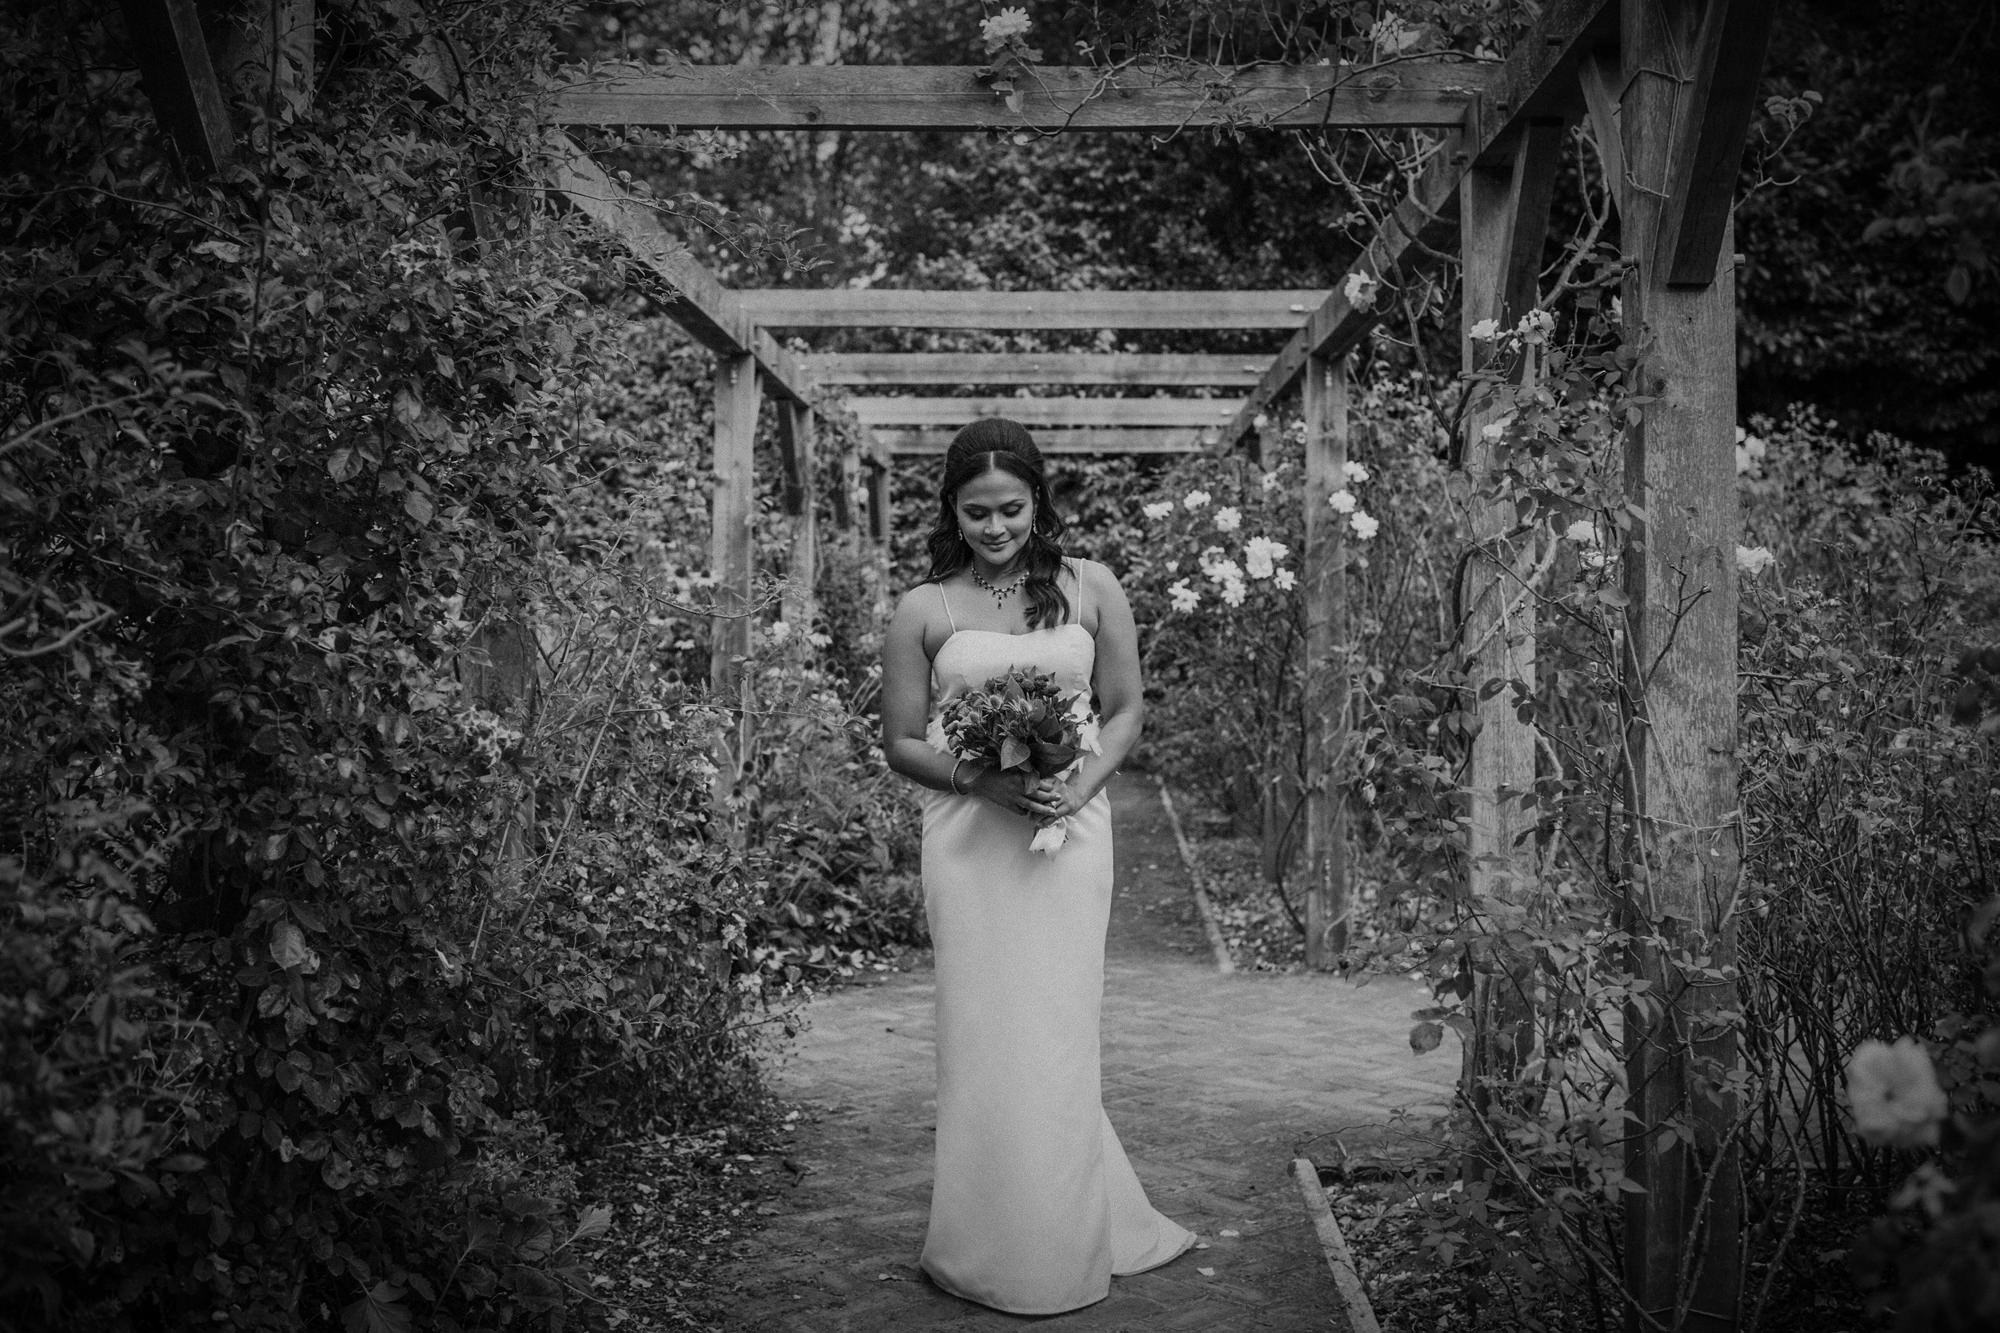 Bride pose with bouquet in floral arbor - photo by Tomas Juskaitis Photography